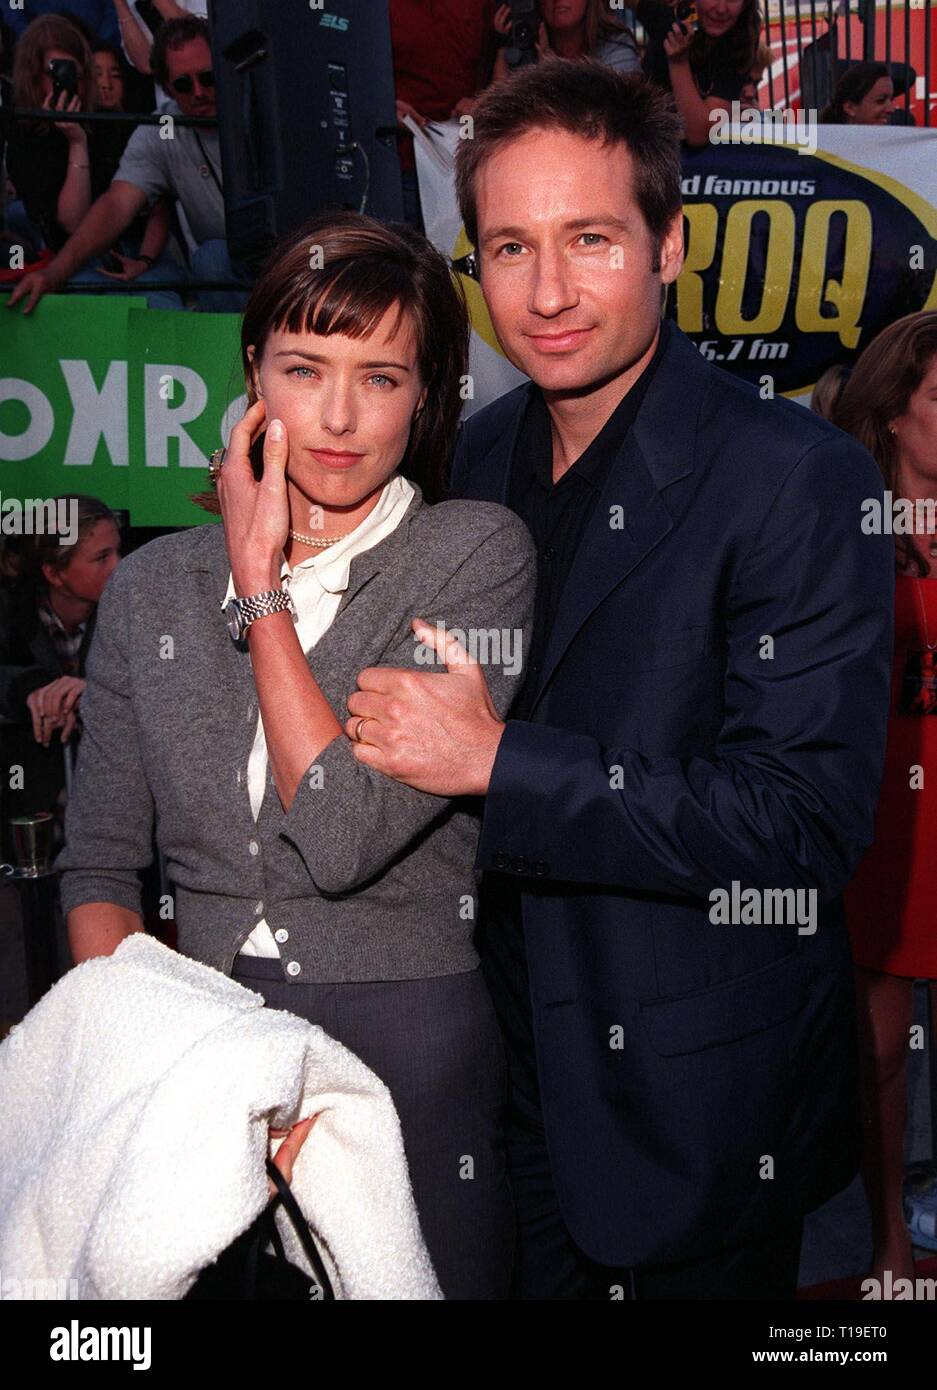 LOS ANGELES, CA - September 8, 2011:  Actor DAVID DUCHOVNY & actress wife TEA LEONI at the world premiere, in Los Angeles, of his new movie 'The X-Files.' - Stock Image